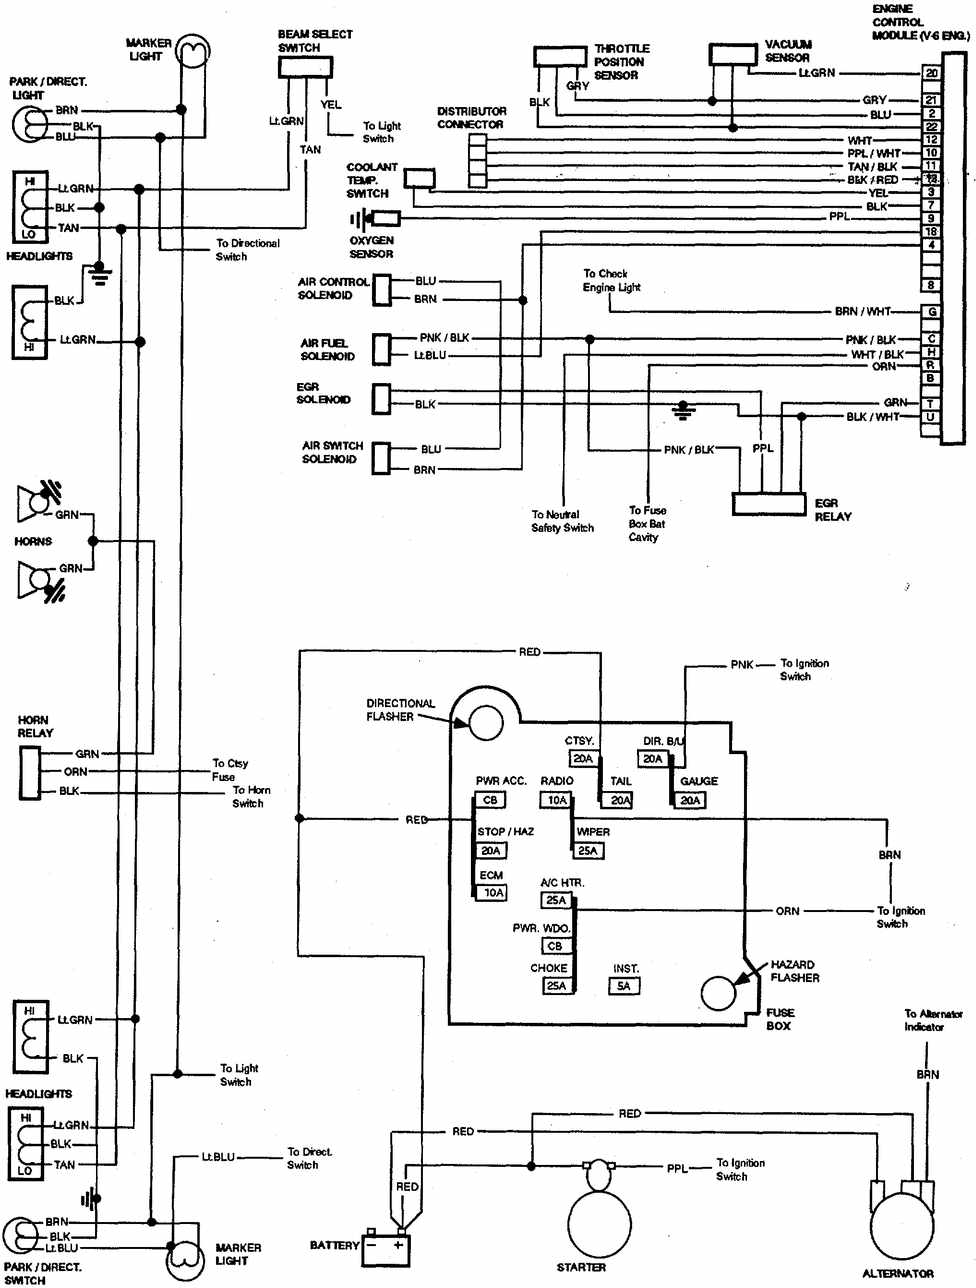 1986 Chevy Blazer Wiring Diagram Free Picture Diagrams Alternator K 5 Library Rh 29 Codingcommunity De K5